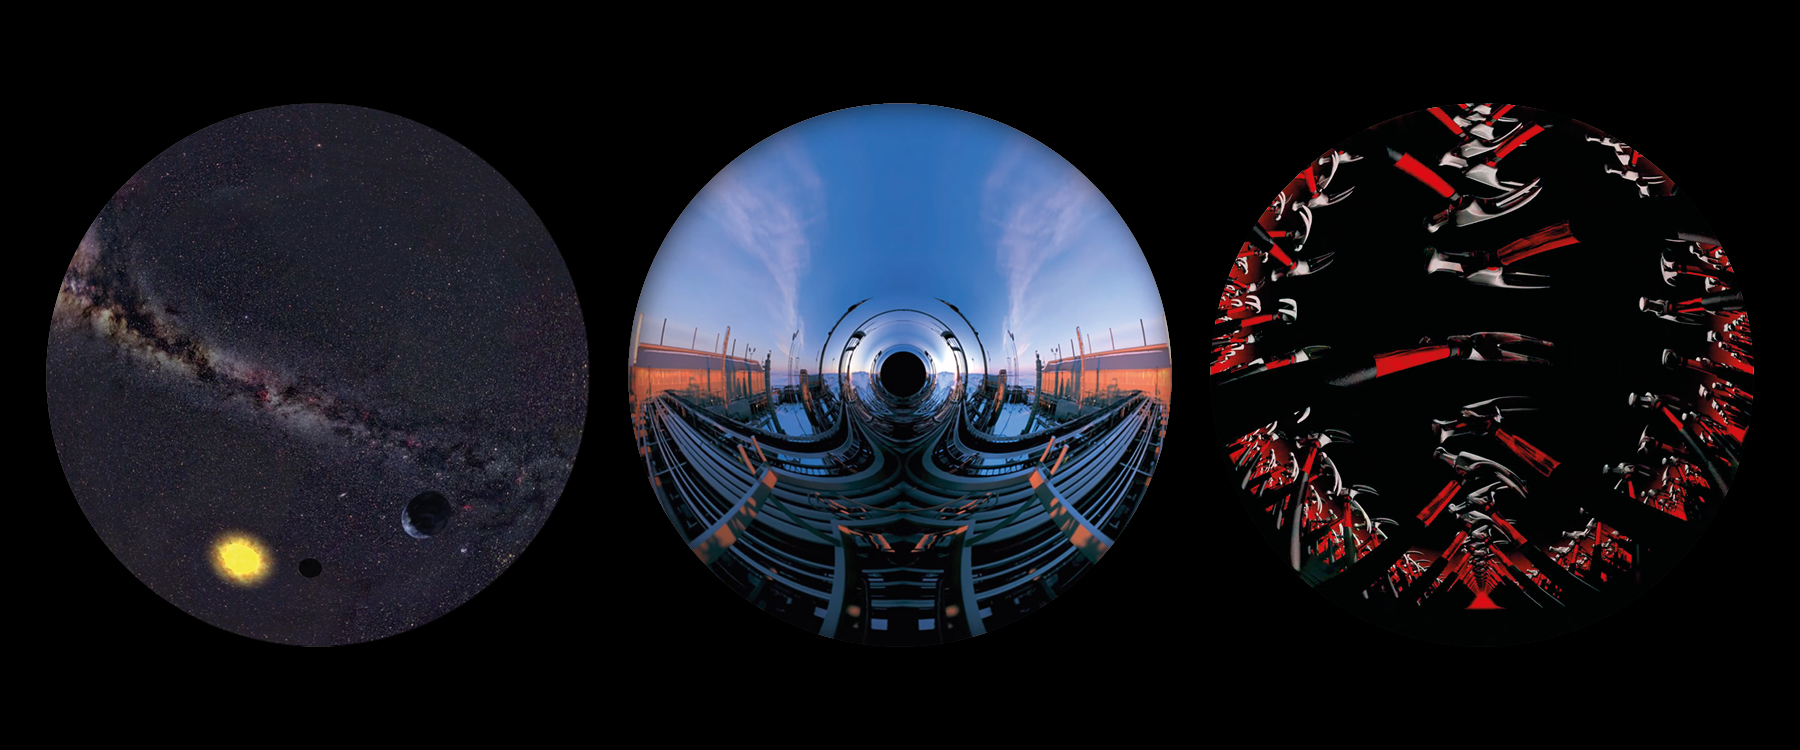 Three circular images showing stills from experiences inspired by Pink Floyd. The first shows a galaxy, the second a blue sky above a semi-industrial landscape, and the third an array of hammers.